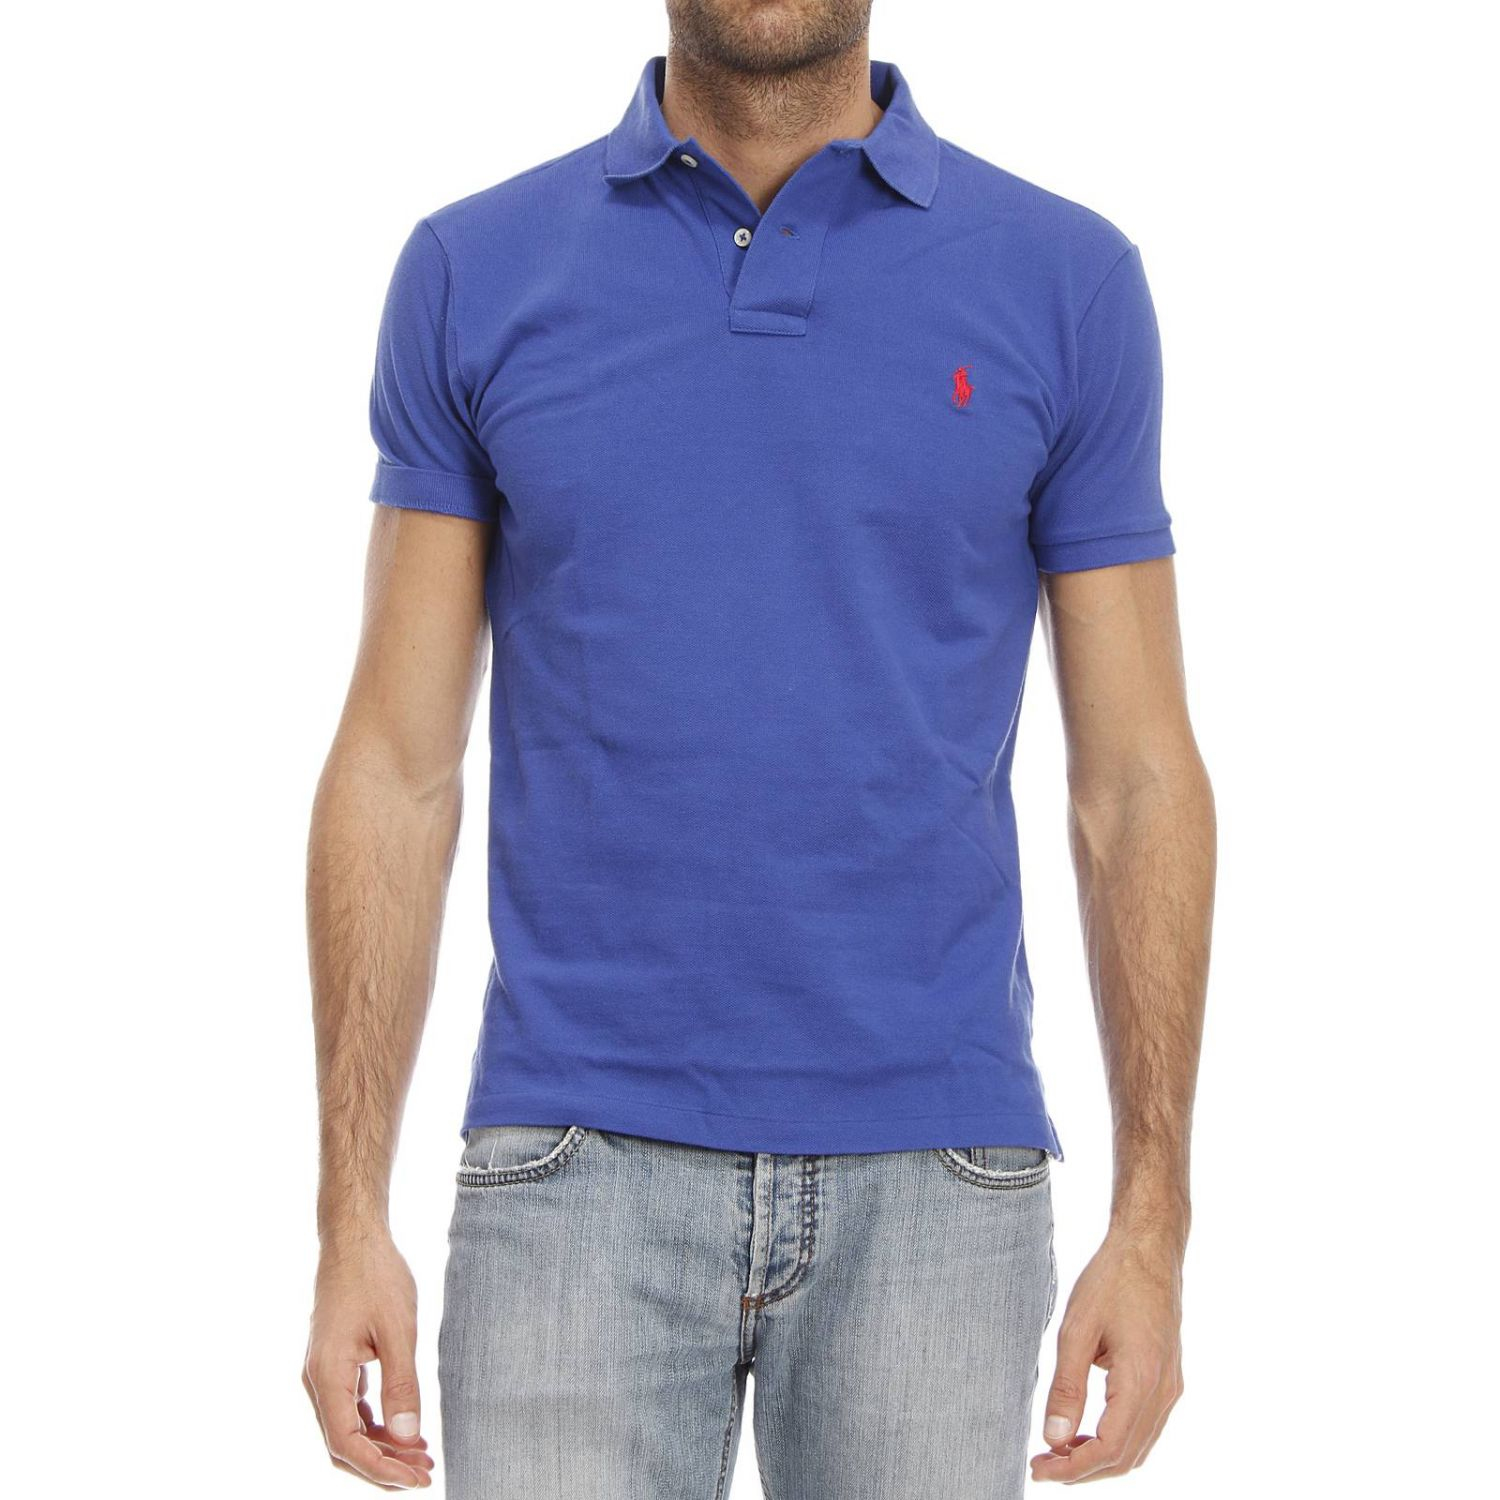 lyst polo ralph lauren t shirt in blue for men. Black Bedroom Furniture Sets. Home Design Ideas